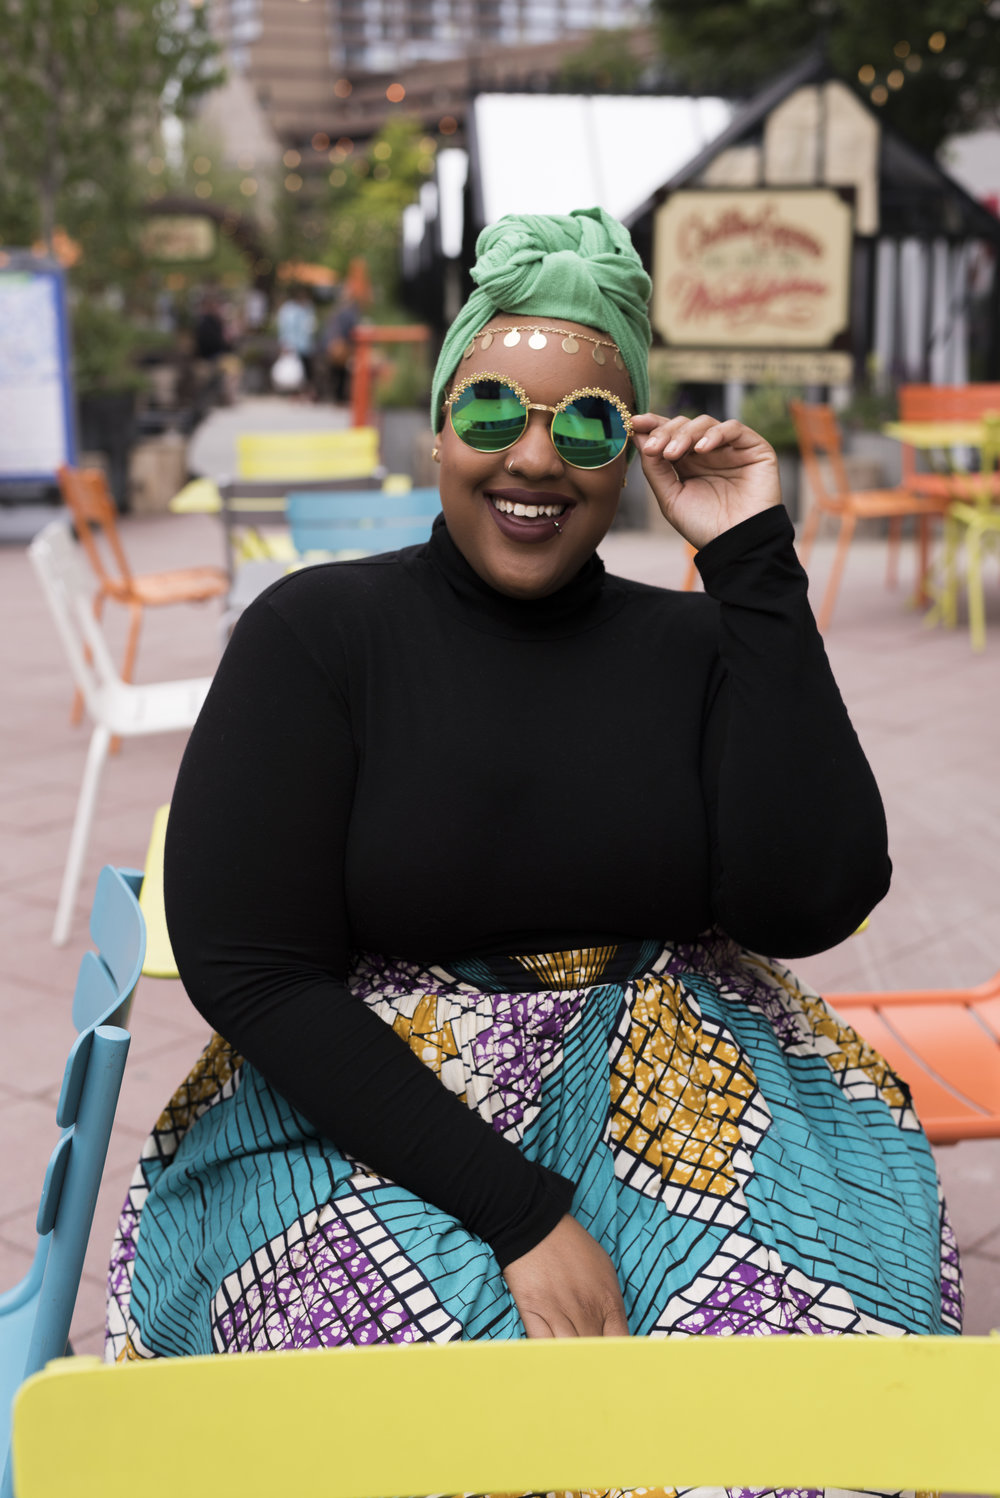 Leah-Vernon-Plus-Size-Muslim-Model-Detroit-Blogger-Body-Positive-Black-Girl-African-Print-Dress.jpg